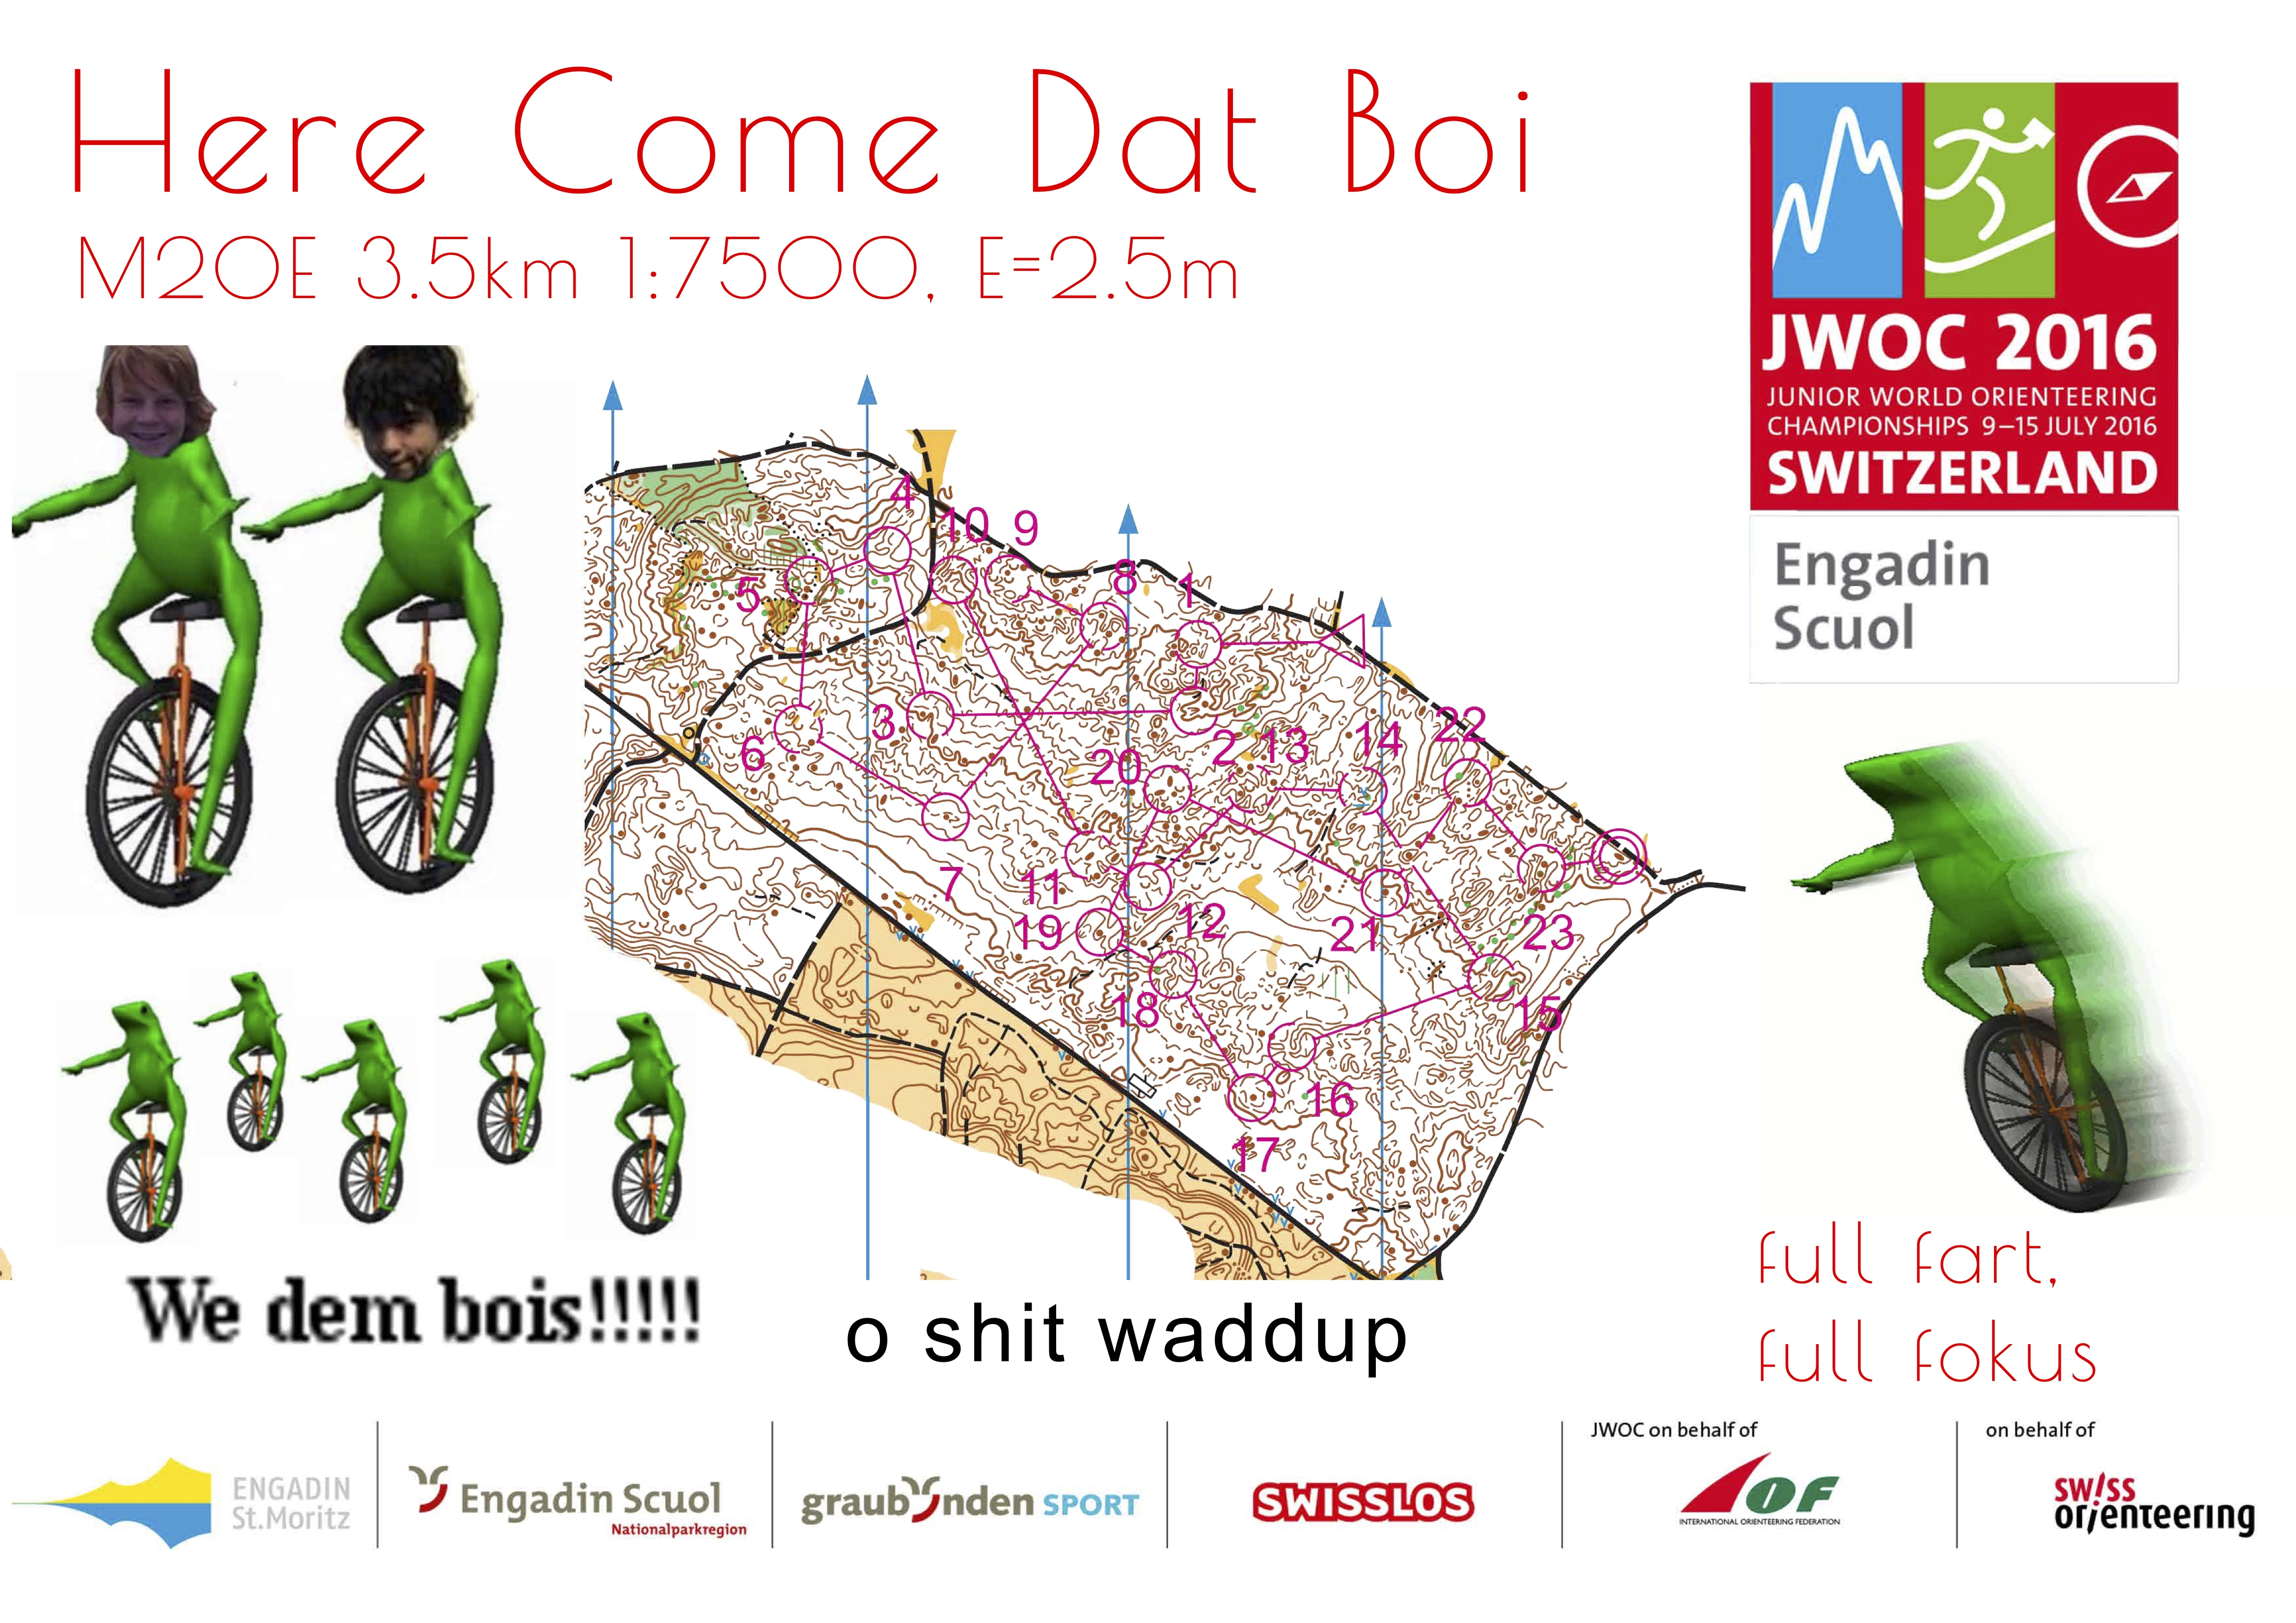 Here Come Dat Boi (10.05.2016)